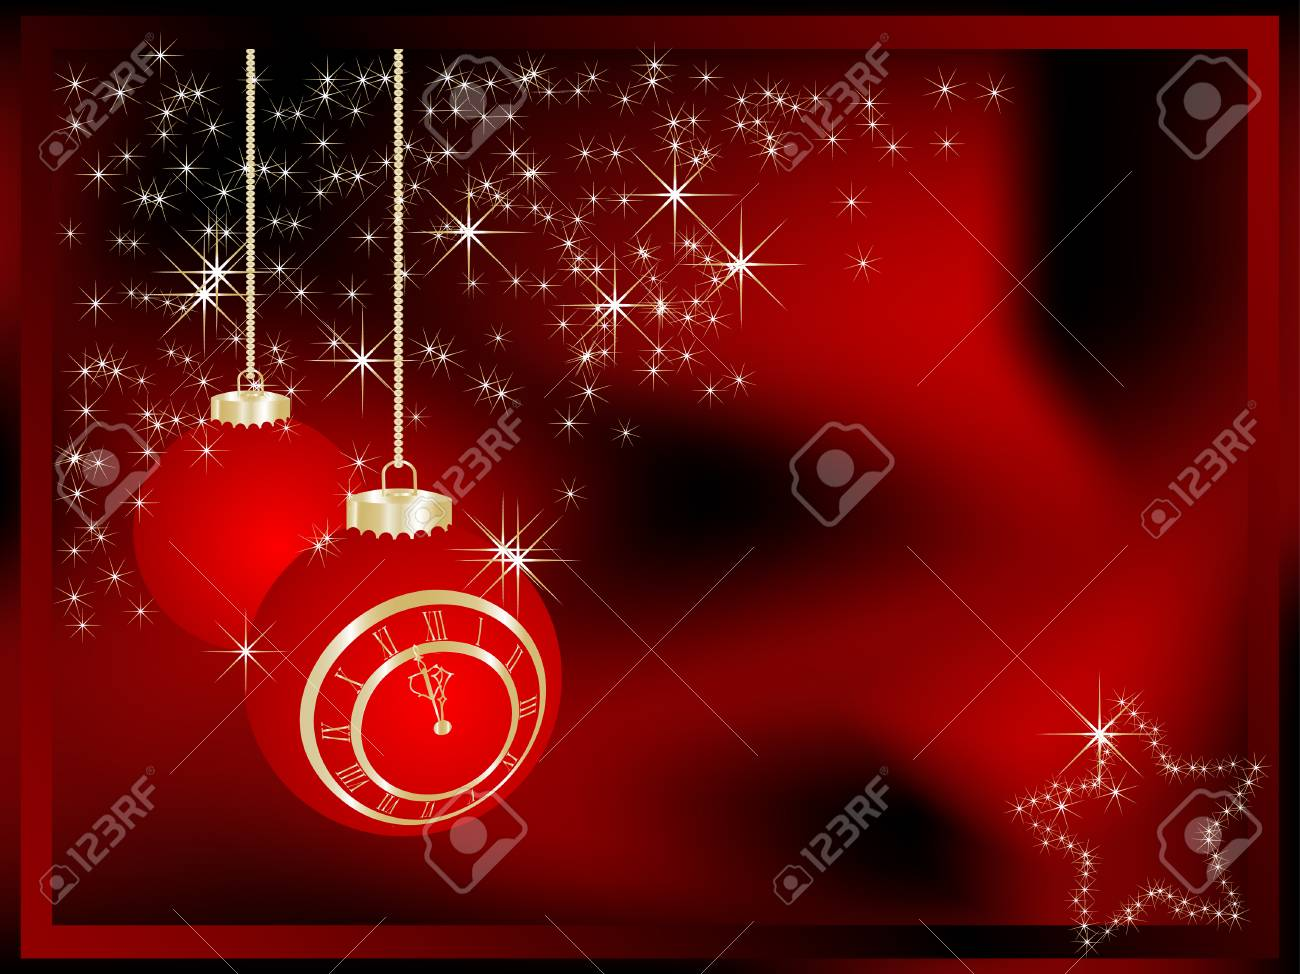 Christmas balls with New Year clock - vector illustration Stock Vector - 6074989